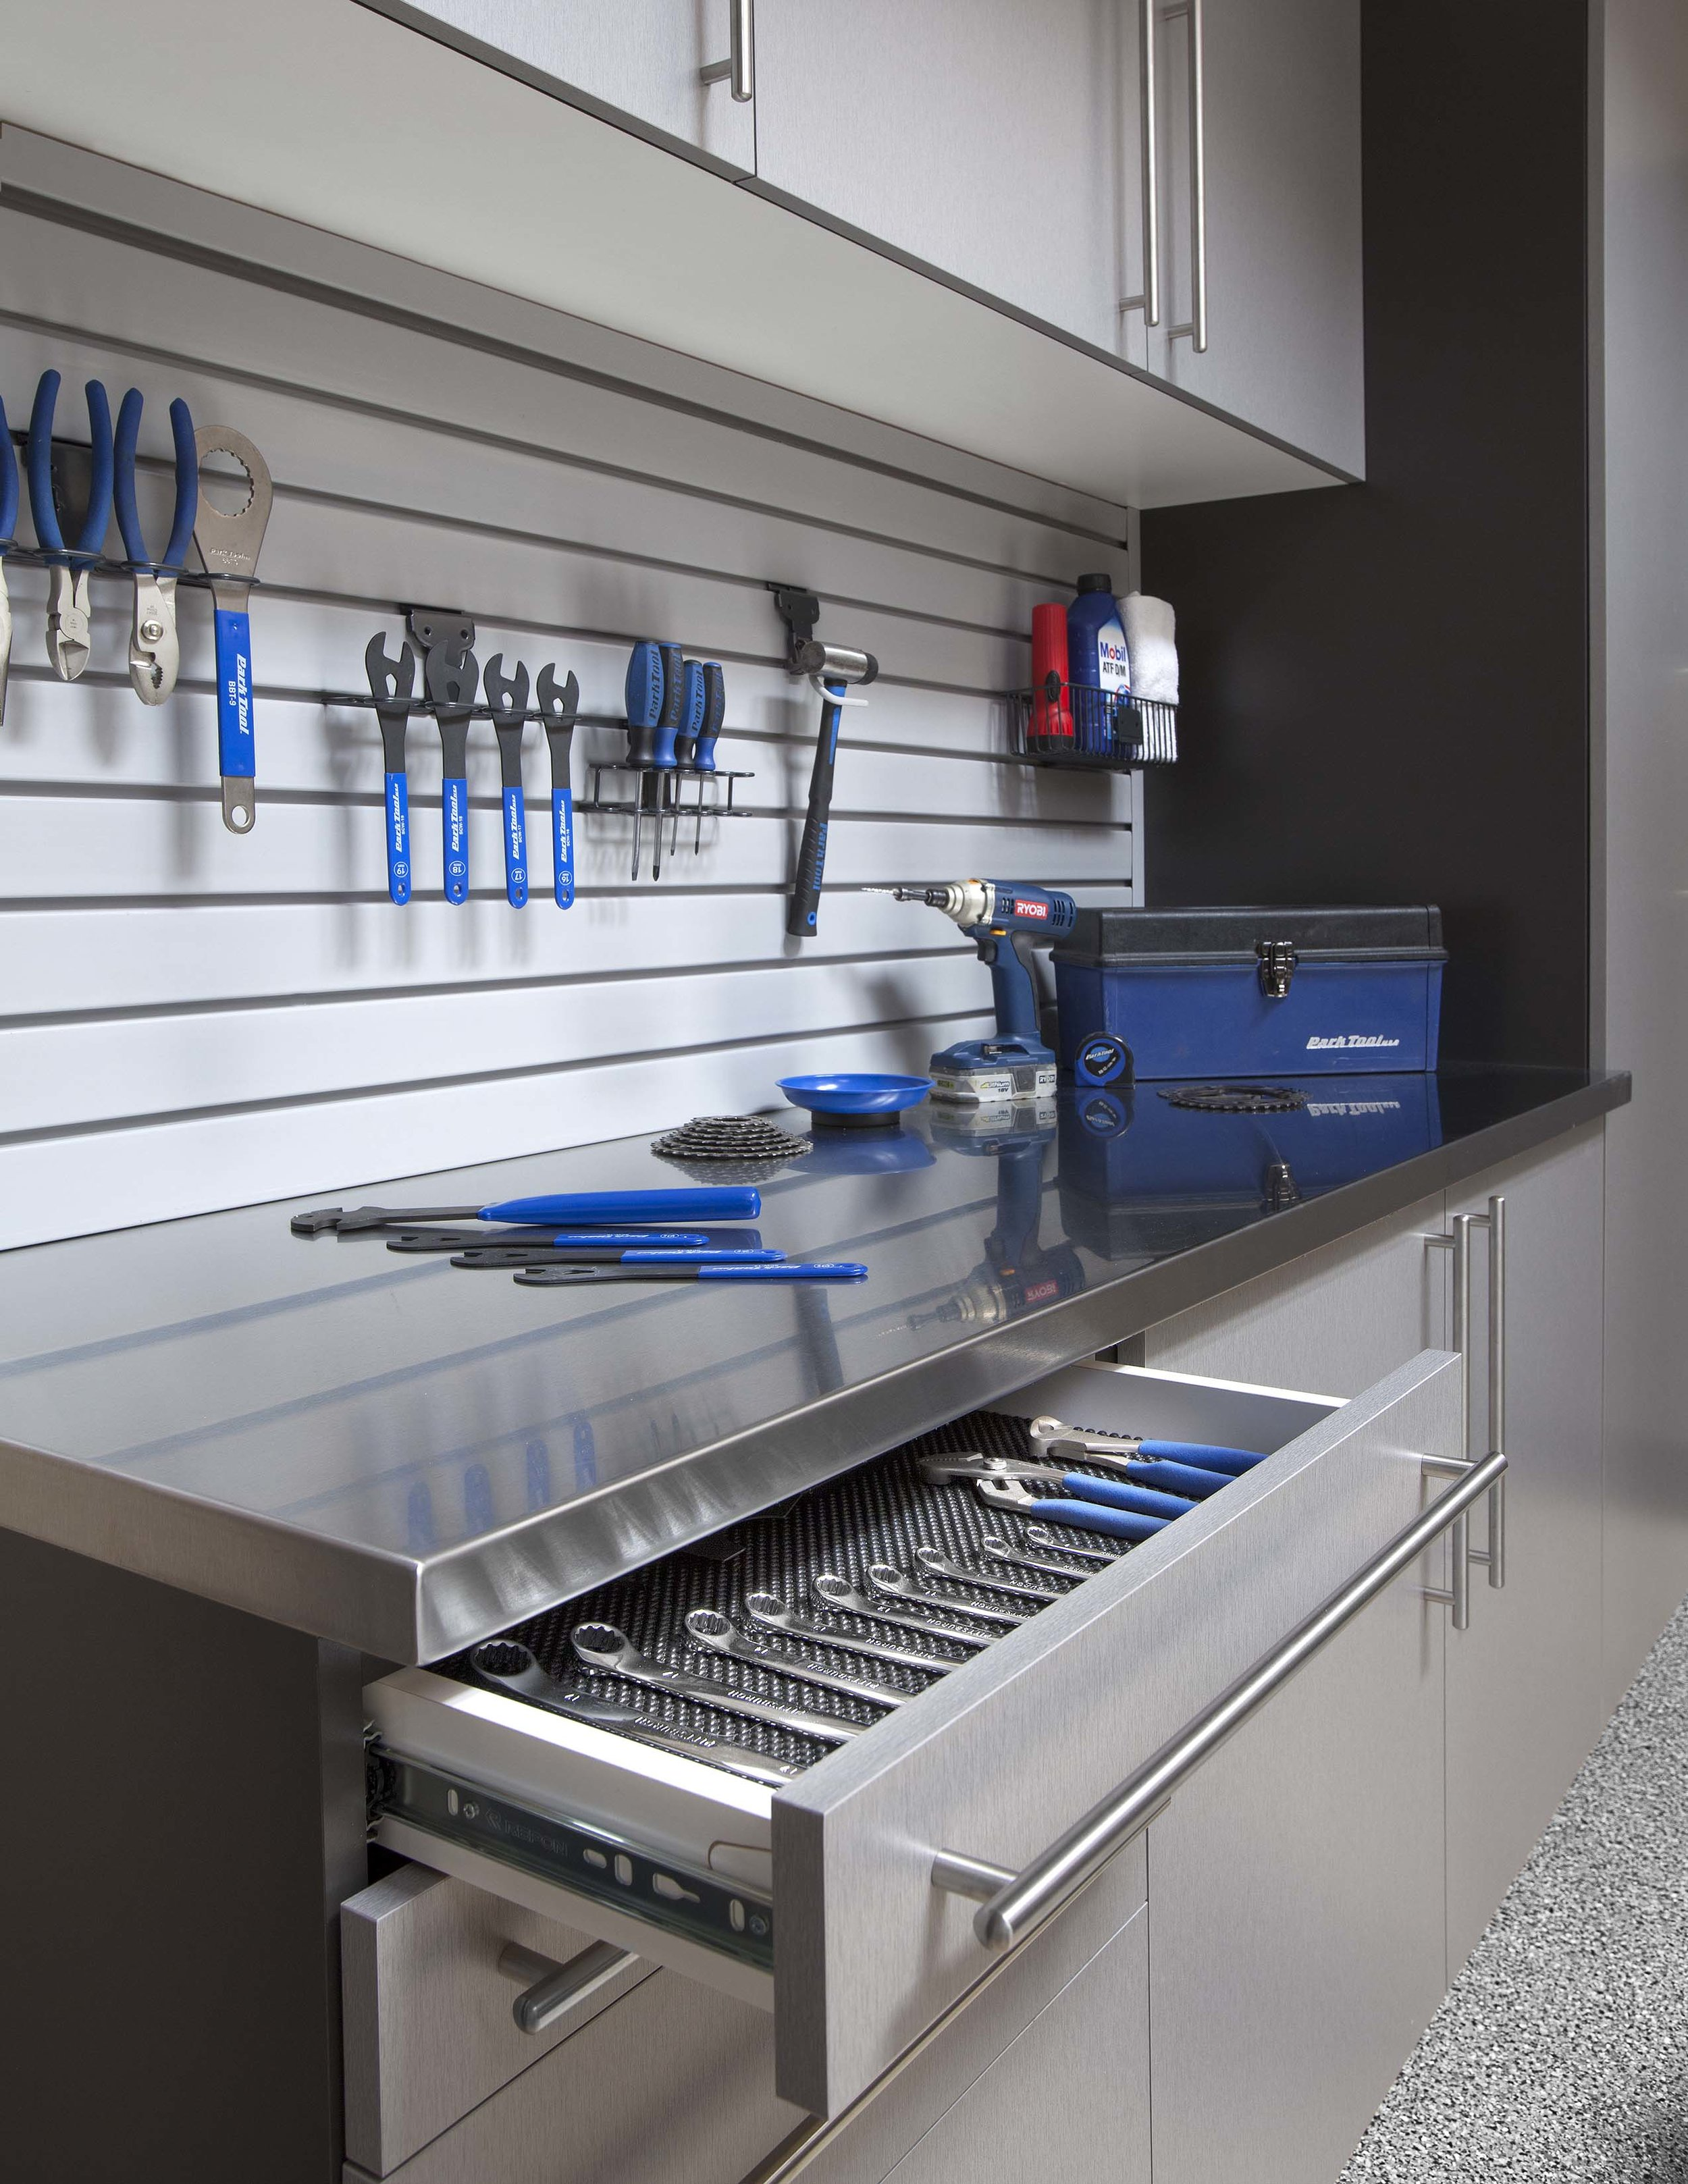 Custom Garage Cabinets with Slatwall Storage, Tool Chest and Stainless Steel Countertop by Closets of Tulsa